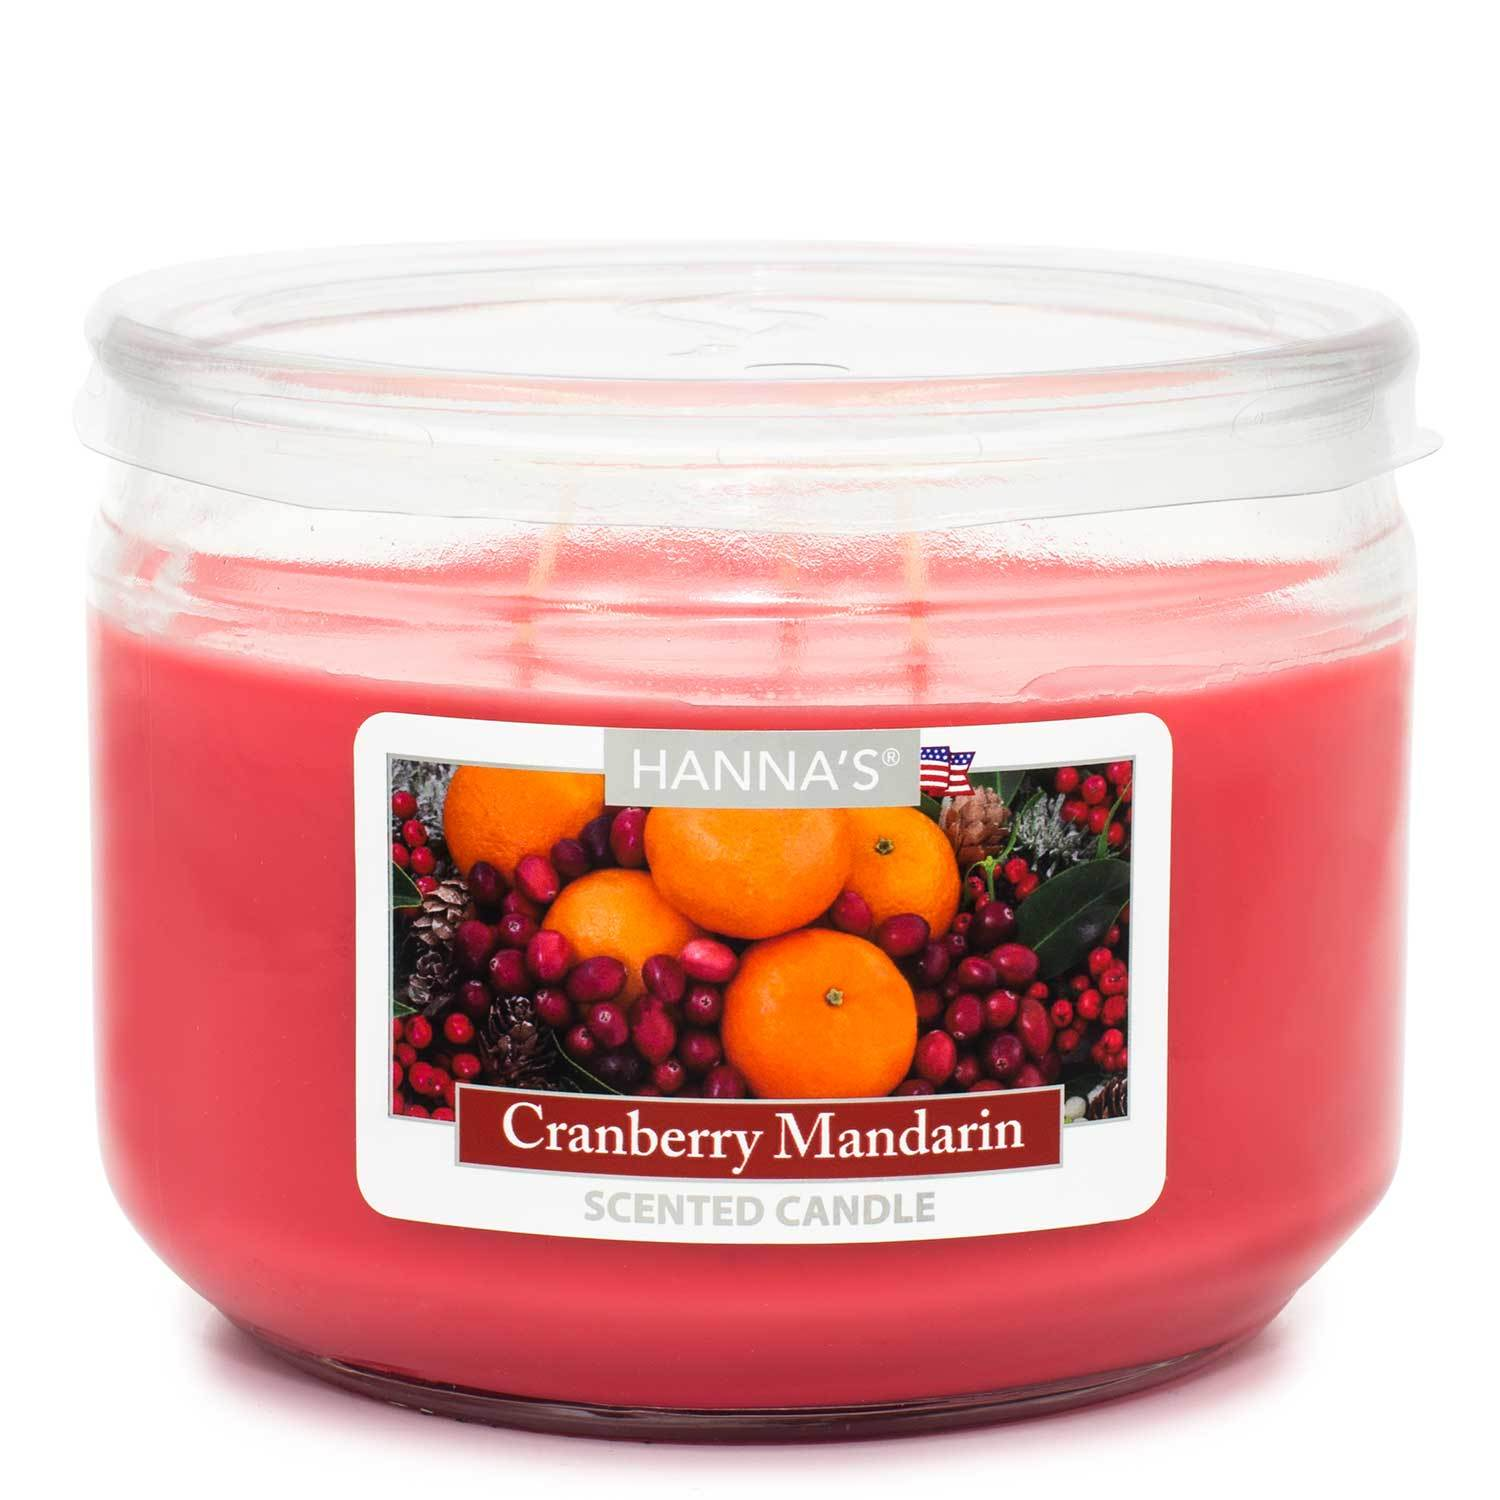 Cranberry Mandarin Scented 3 wick Candle - Candlemart.com